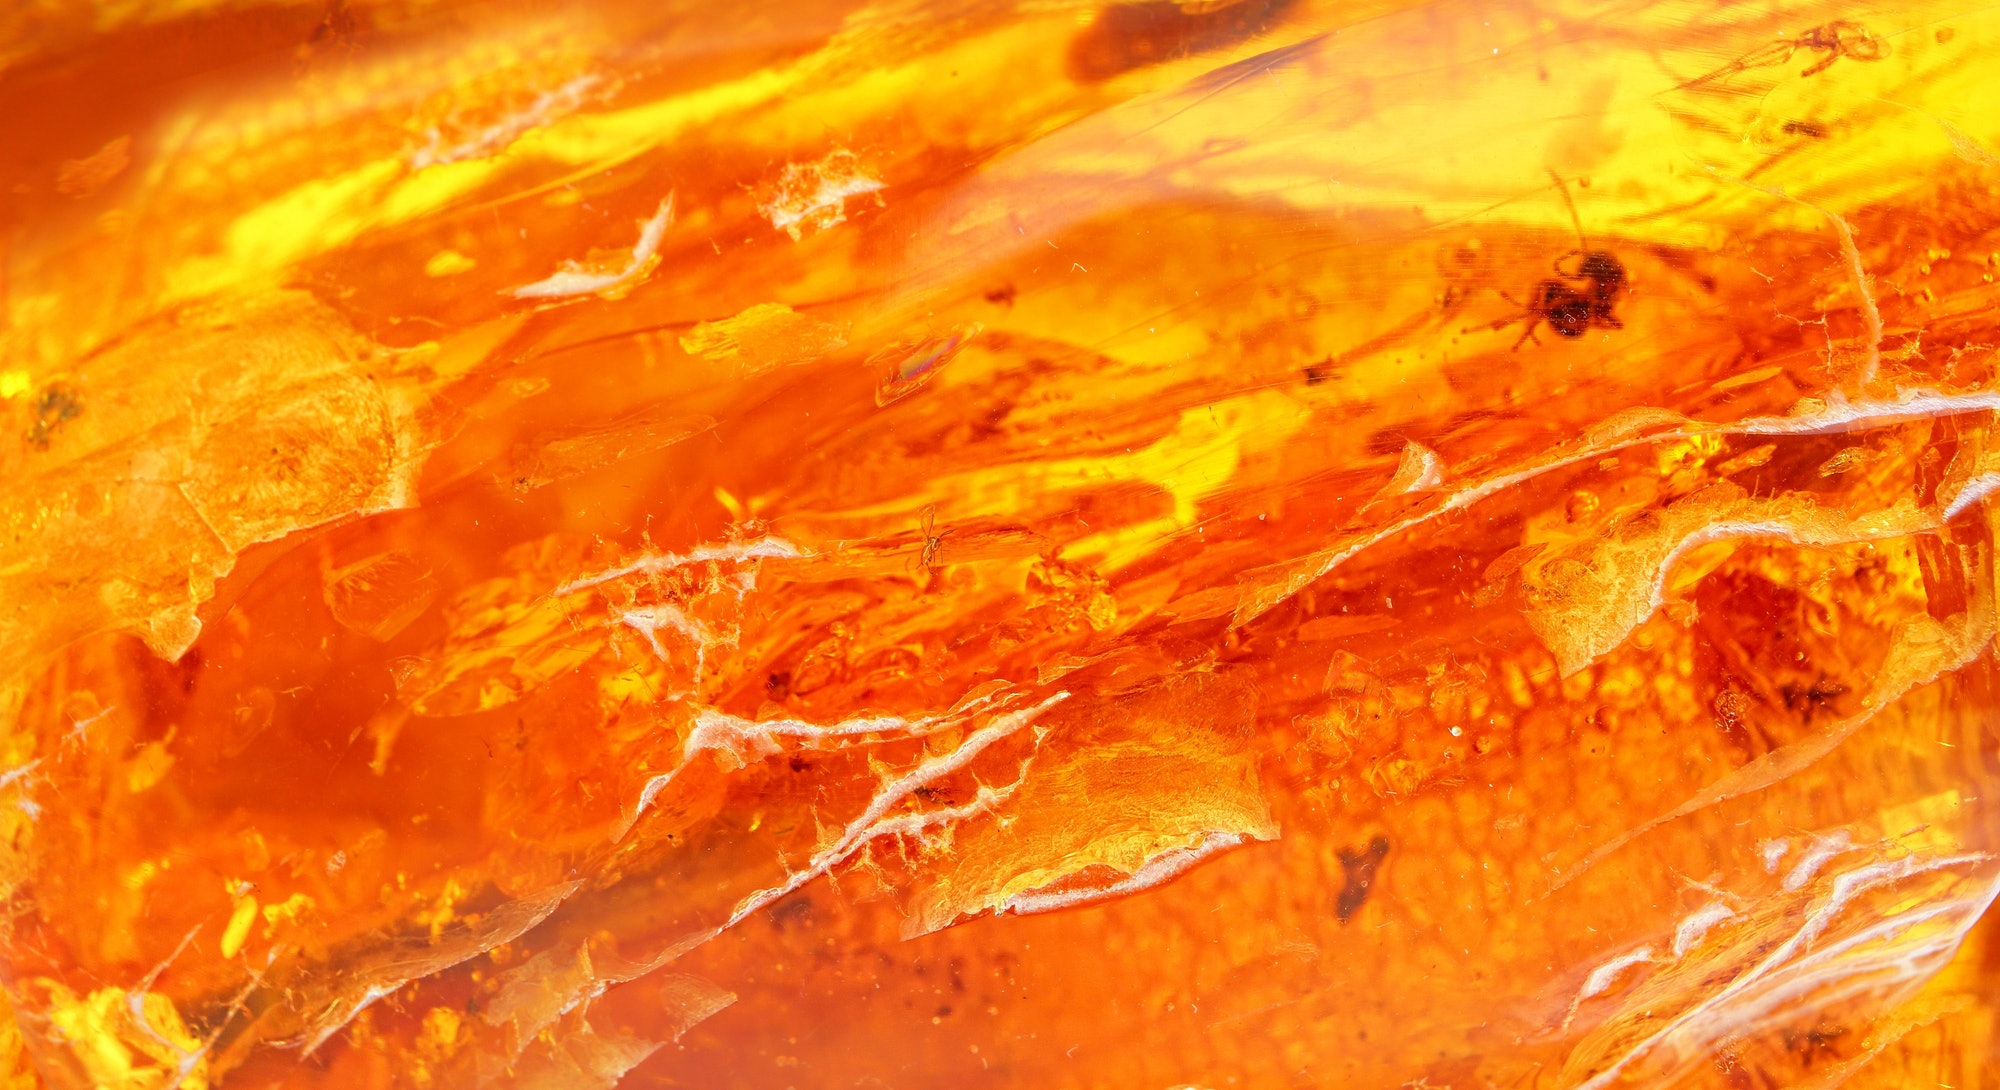 Natural amber texture. Multicolored background for advertising and banners. Vintage fossilized resin as a background. Red amber amber background. Close-up amber. Stone with inclusions